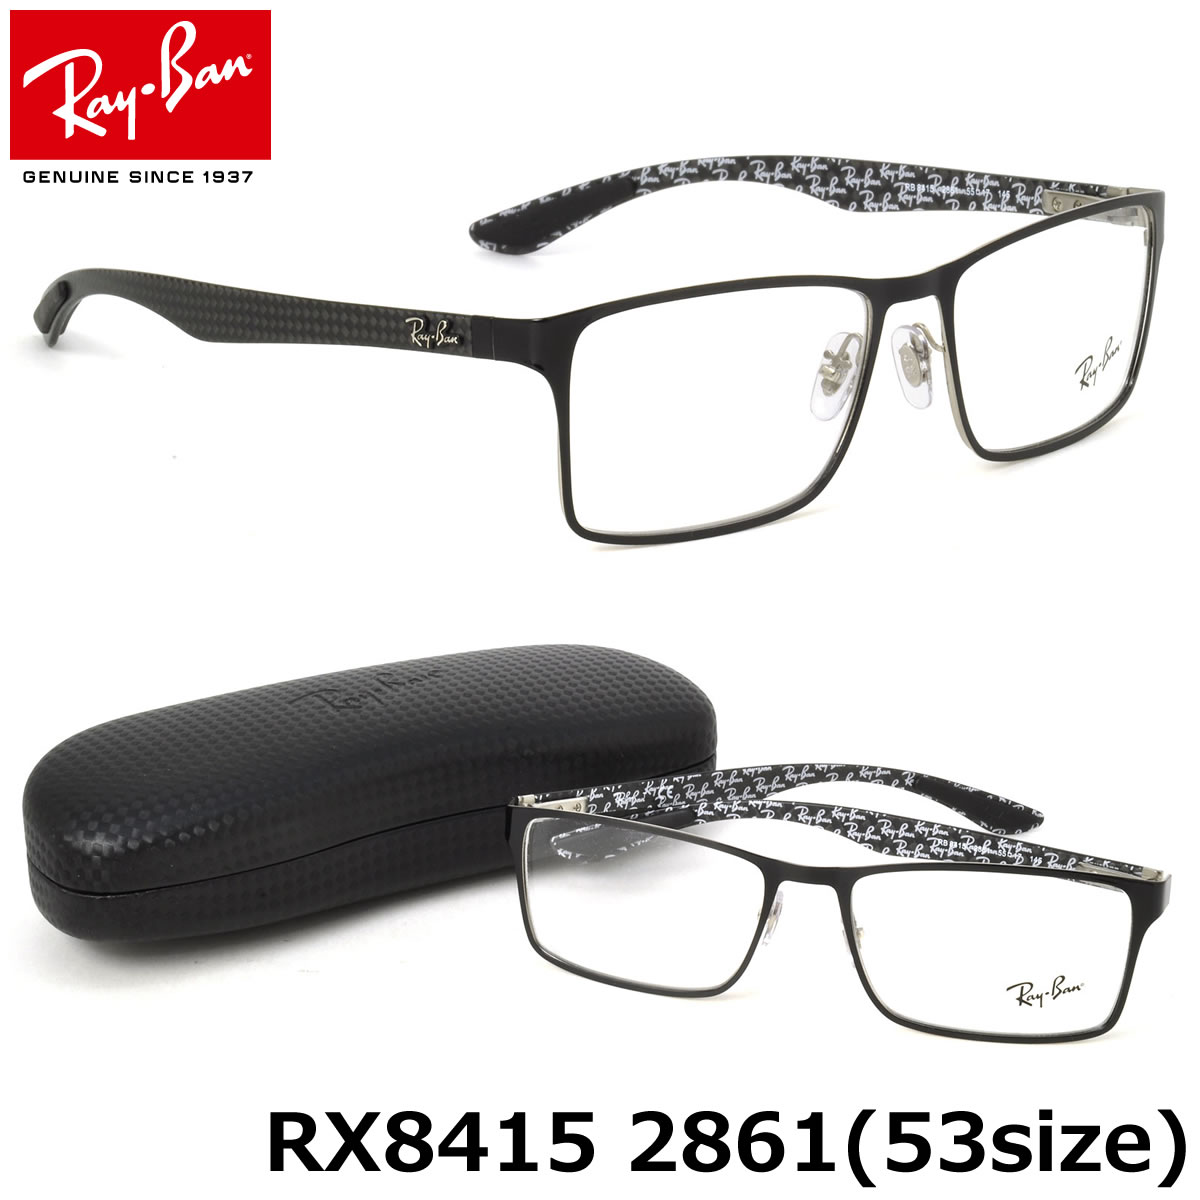 1826bce8a1 Optical Shop Thats  Point up to eight times! (Ray-Ban) glasses ...